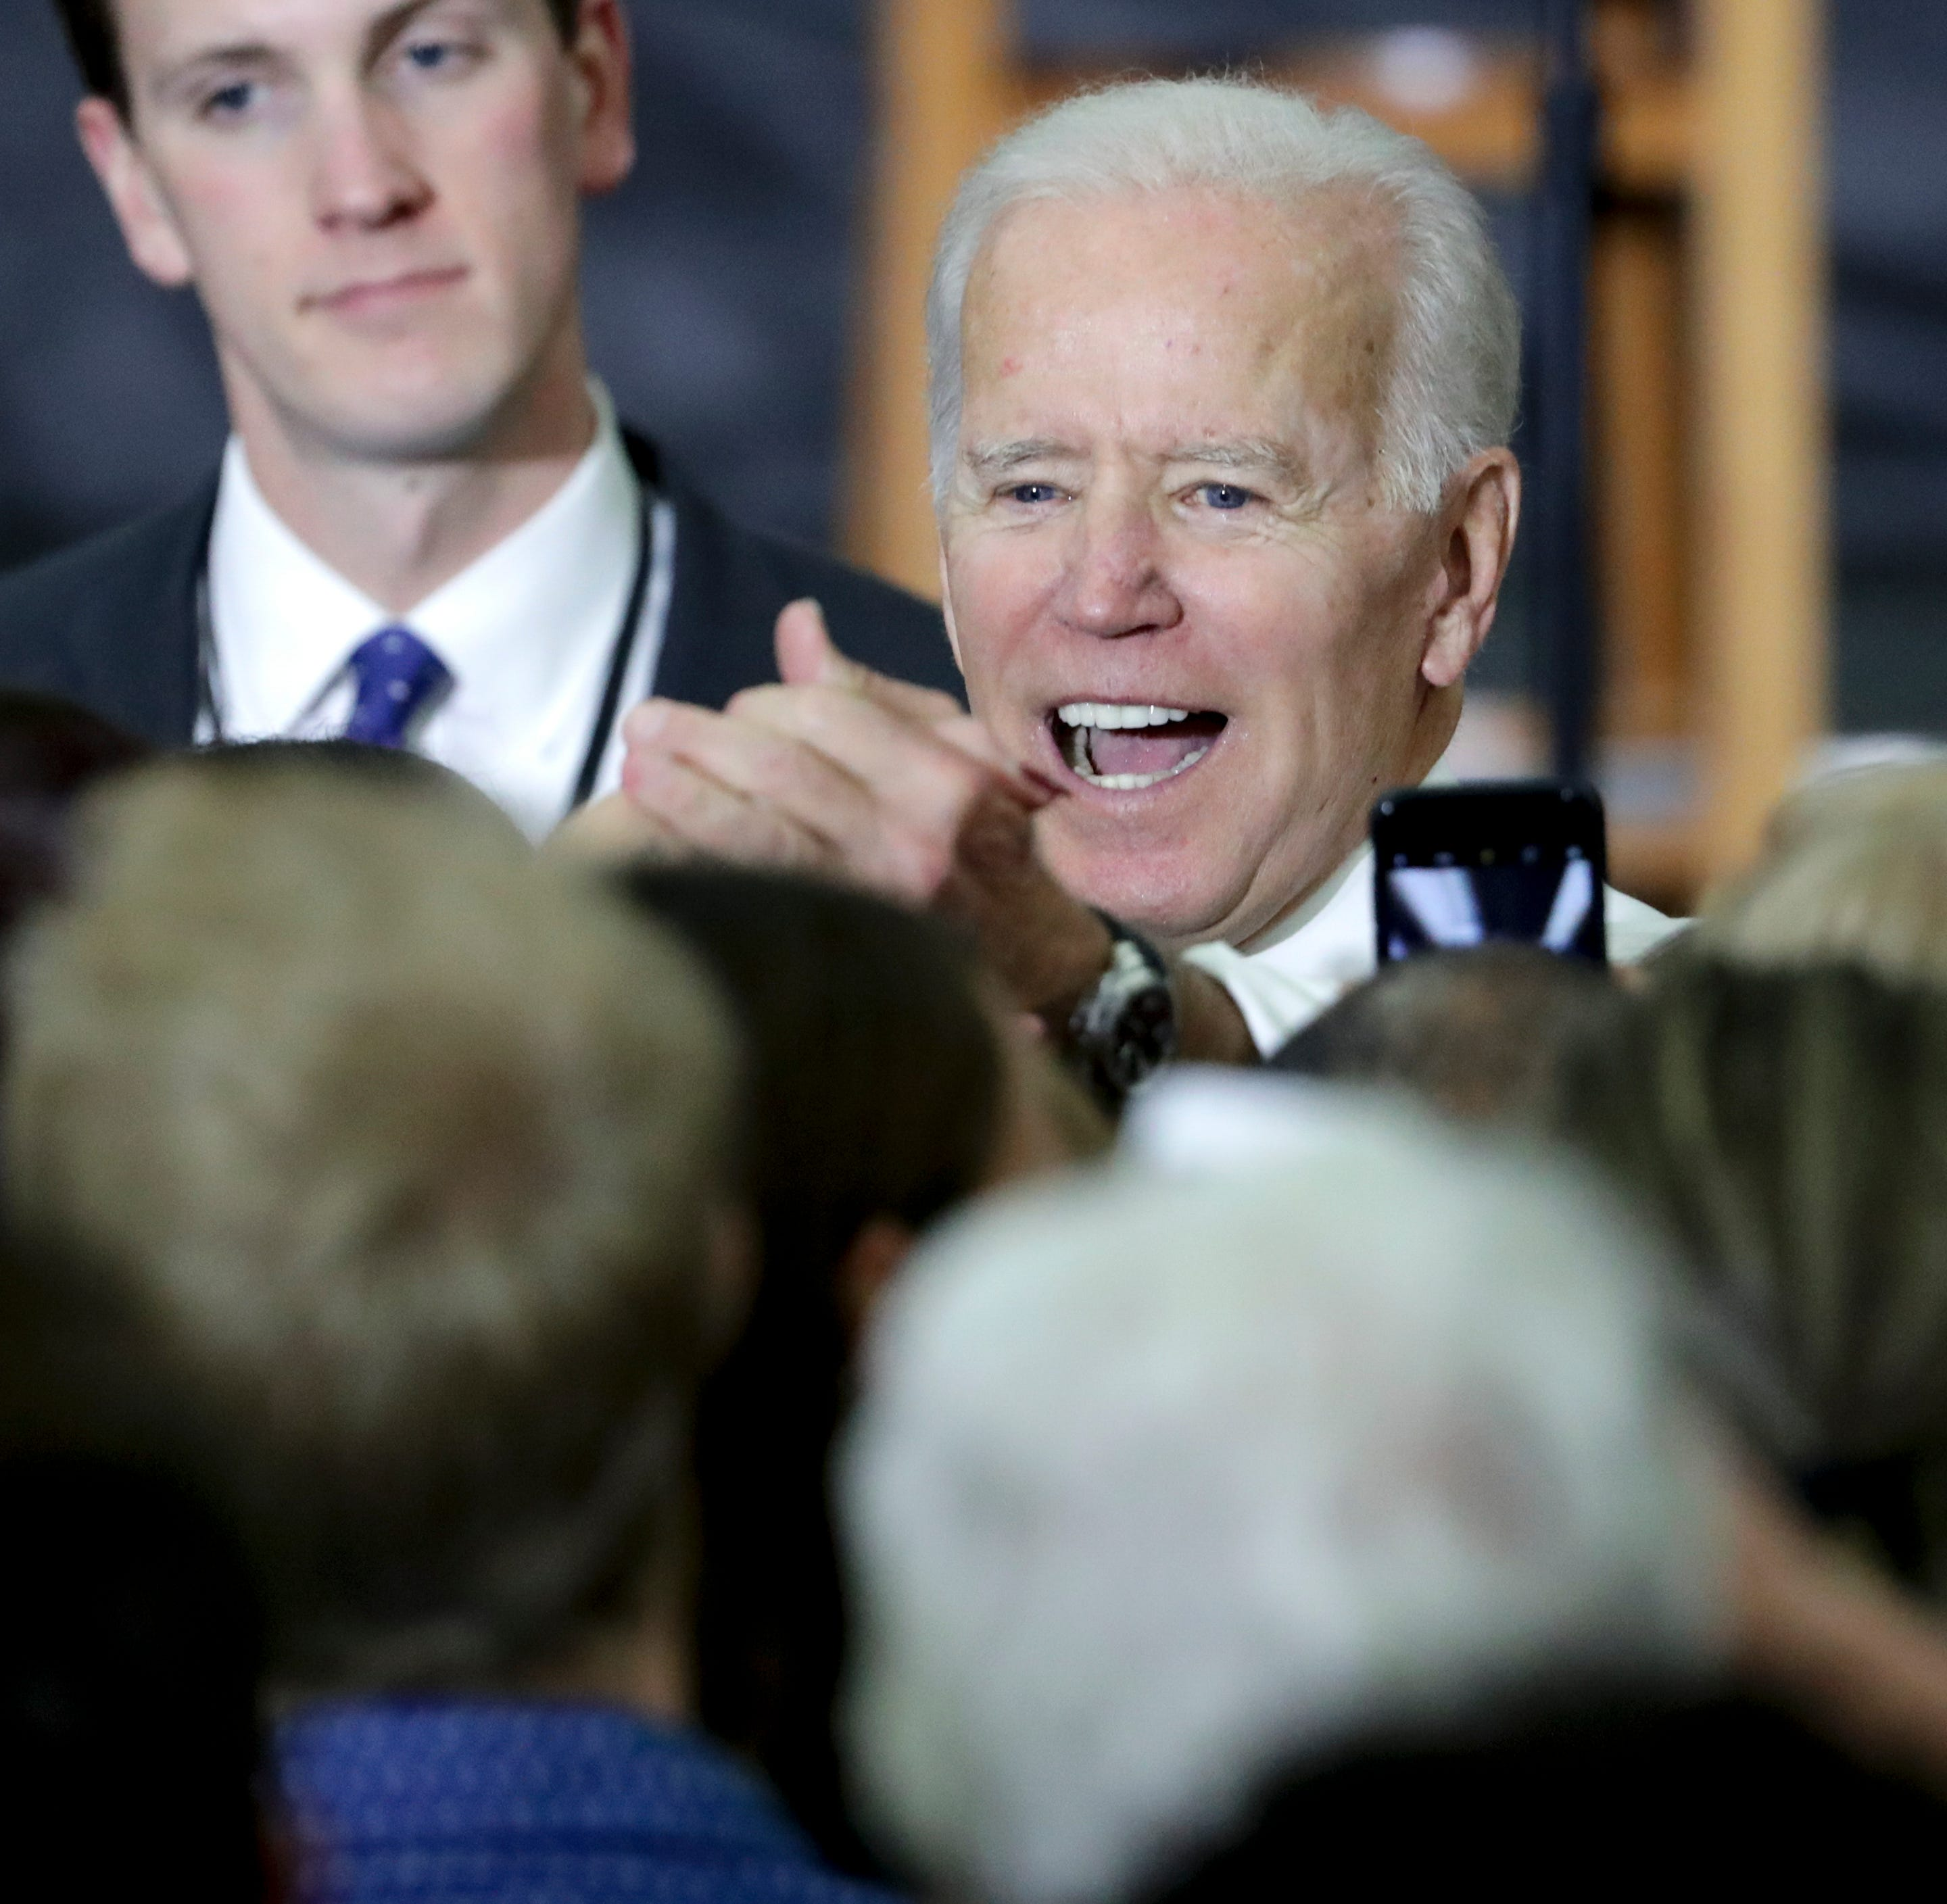 Delaware Dem leaders support Joe Biden, but is he prepared to lead party progressives?